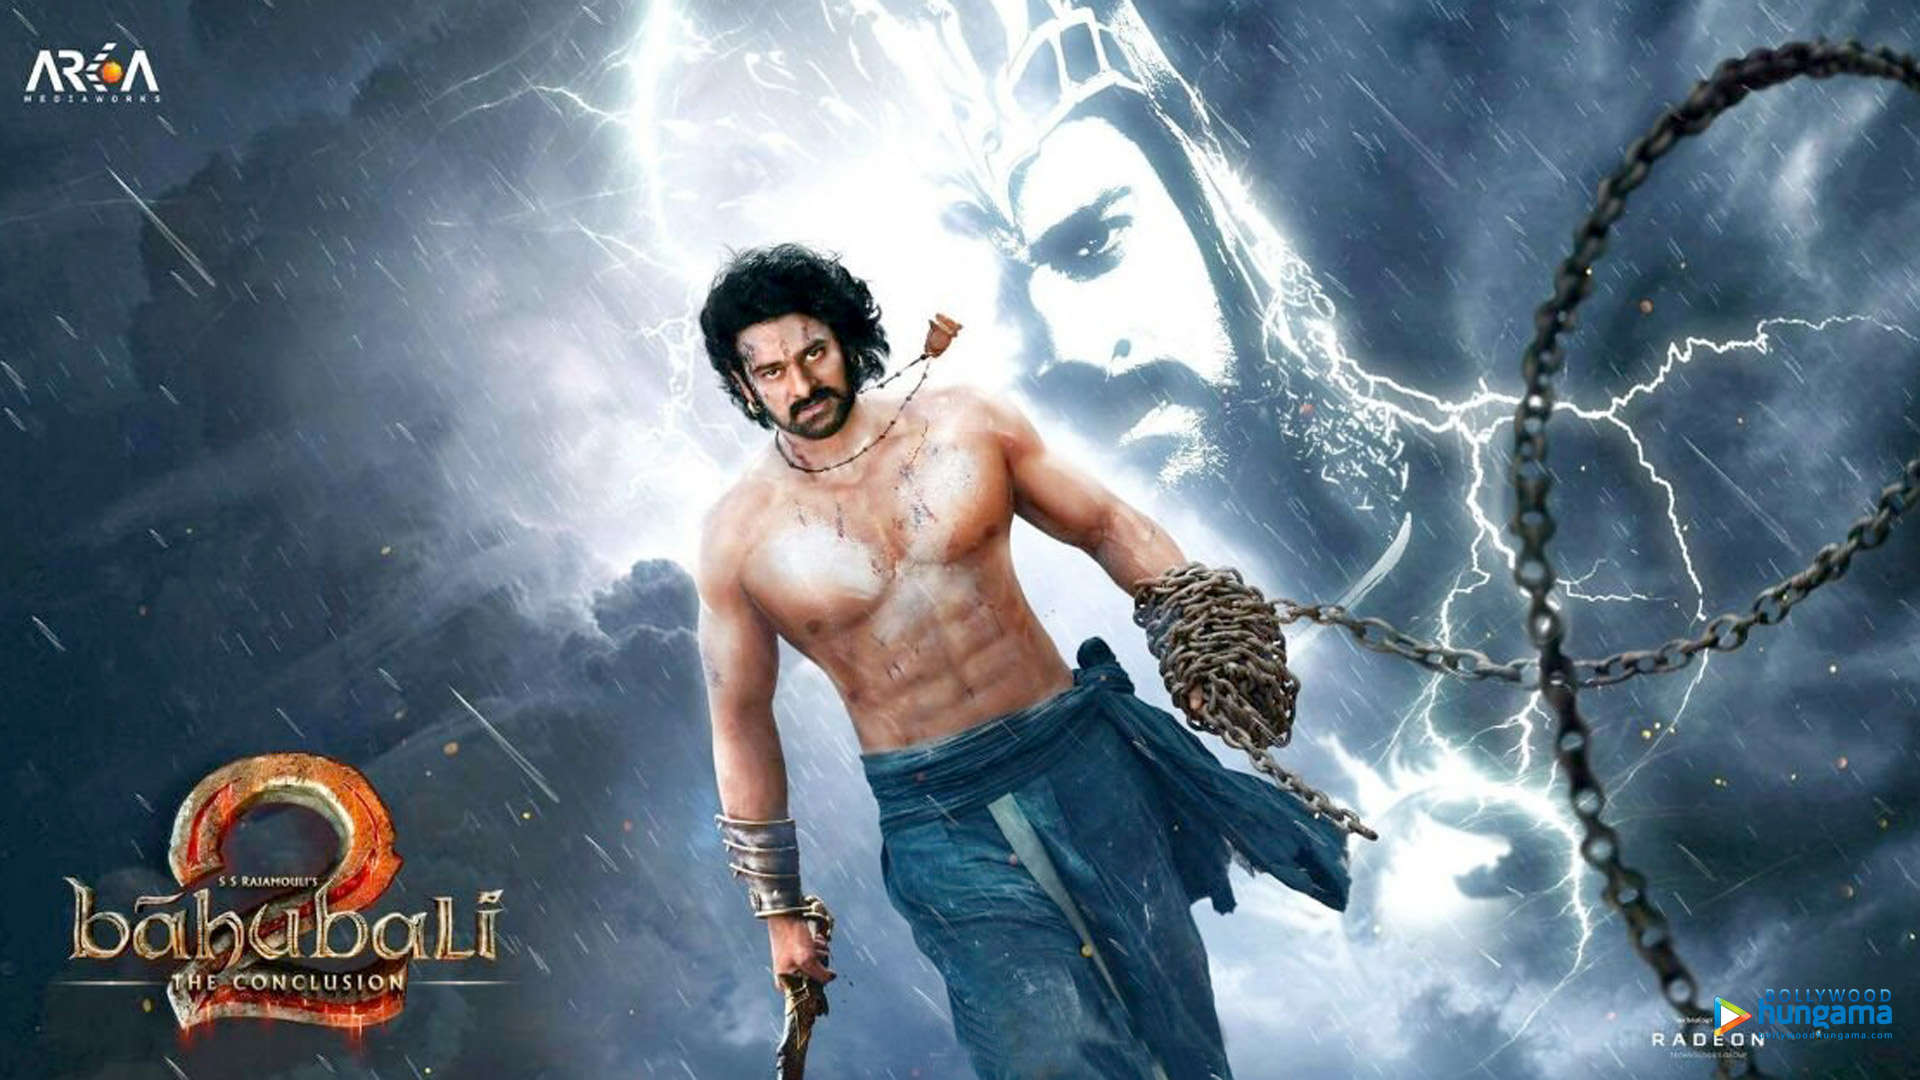 Bahubali : The conclusion